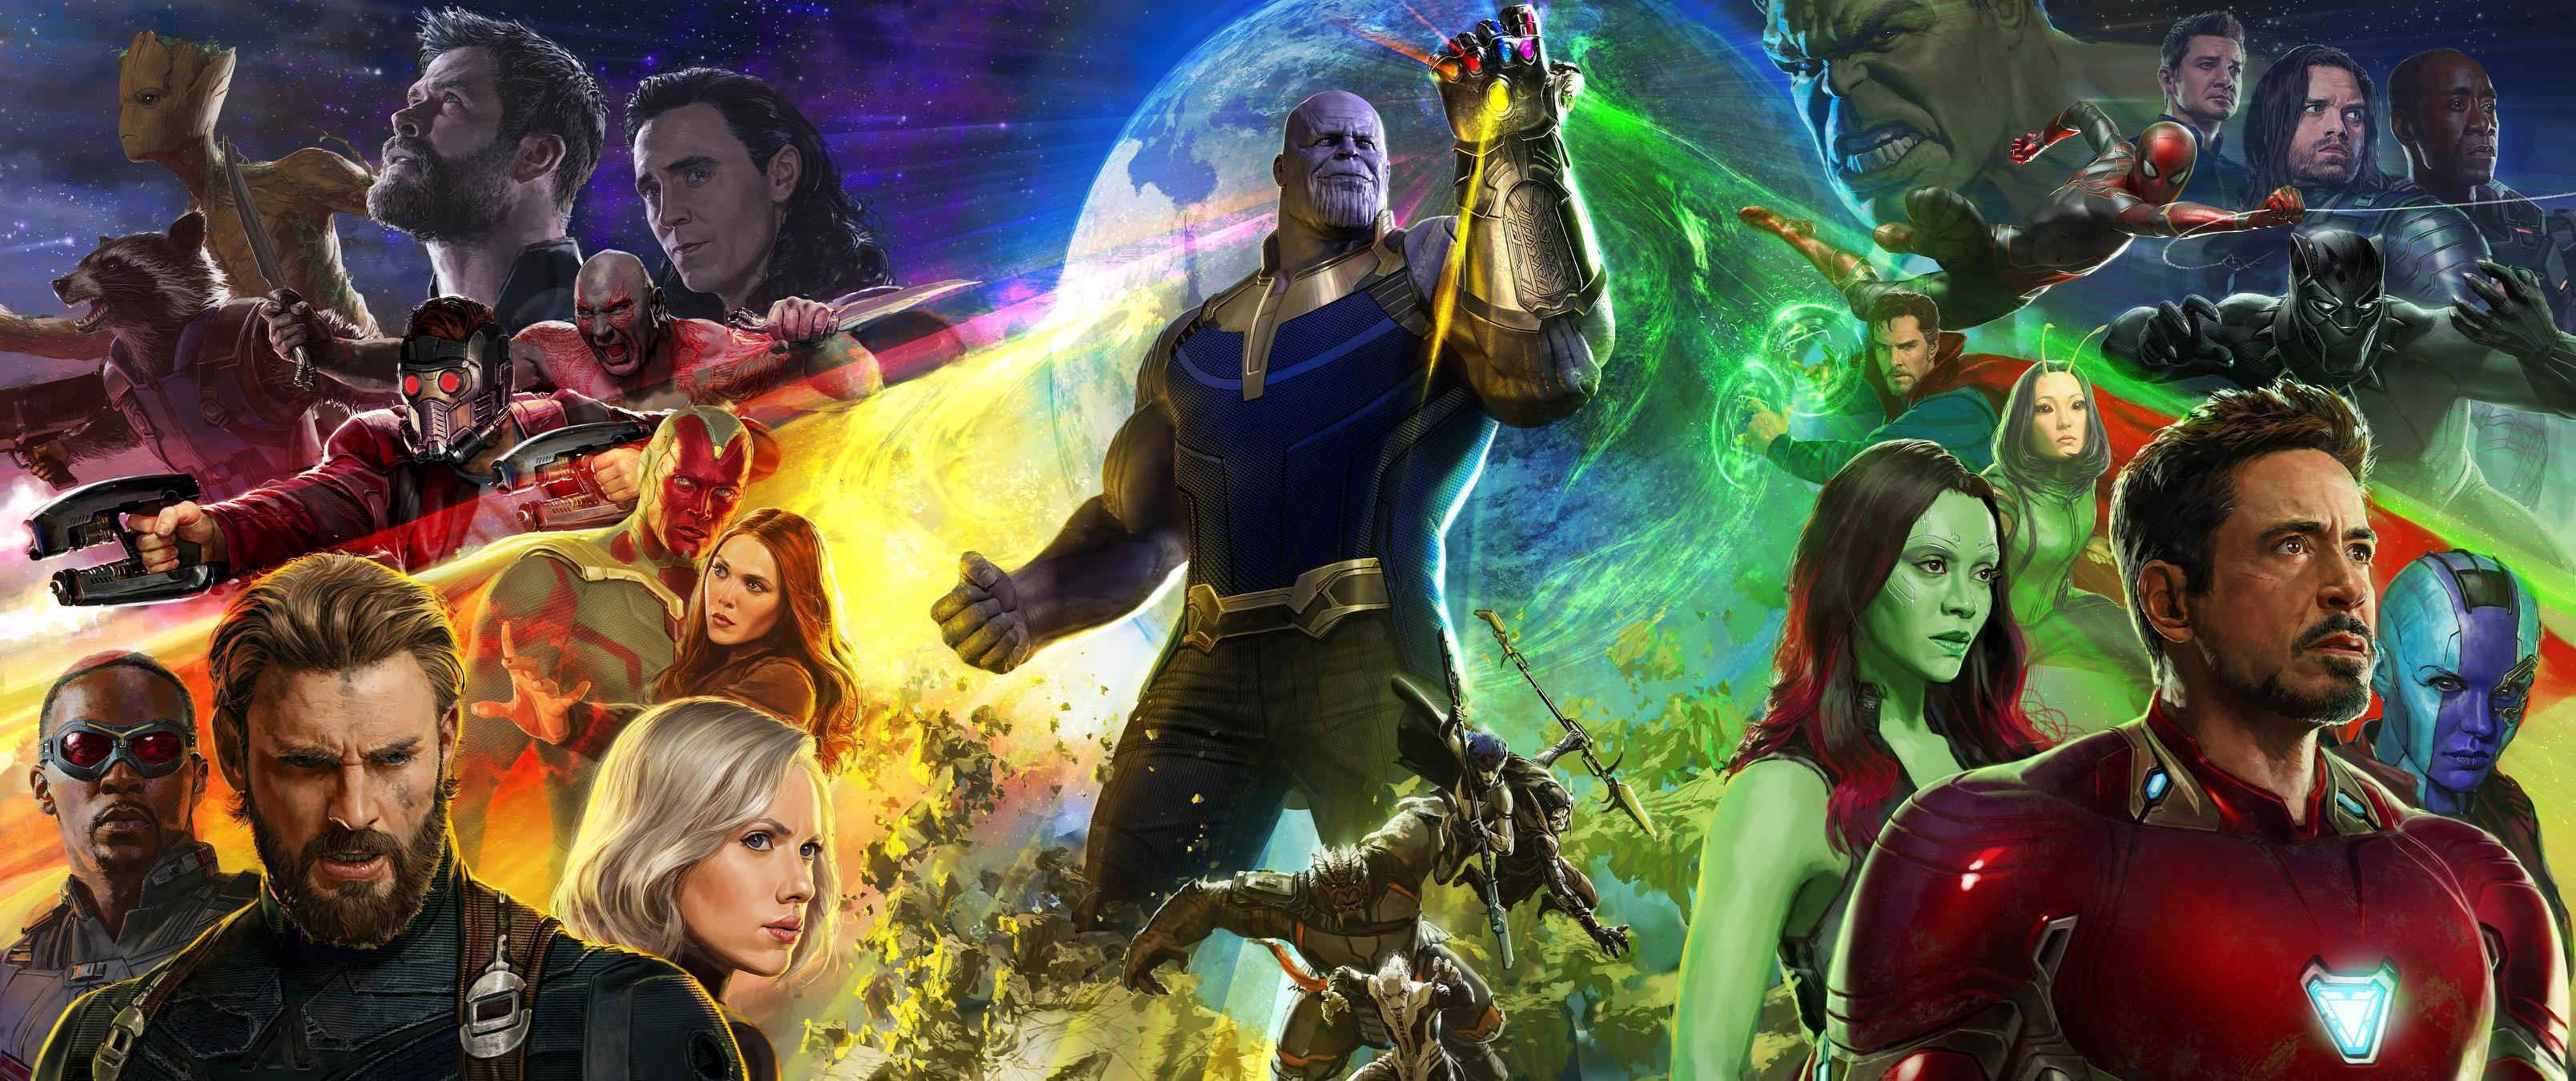 What You Need To Know Before You See Infinity War